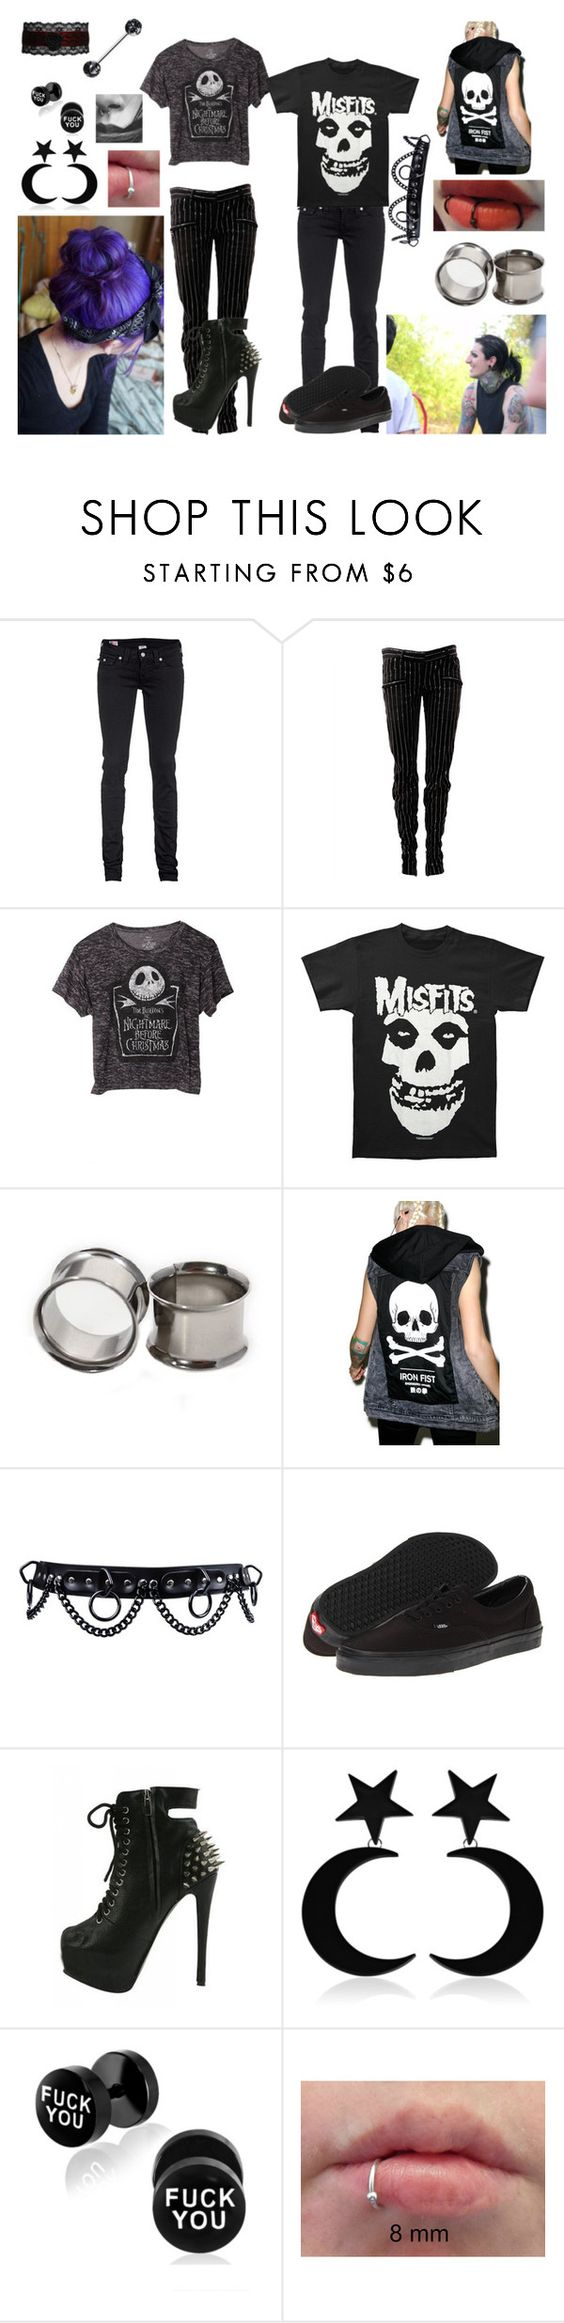 """motionless in white preferences"" by newmotionlessjinxxgamer ❤ liked on Polyvore featuring True Religion, Balmain, Iron Fist and Vans"